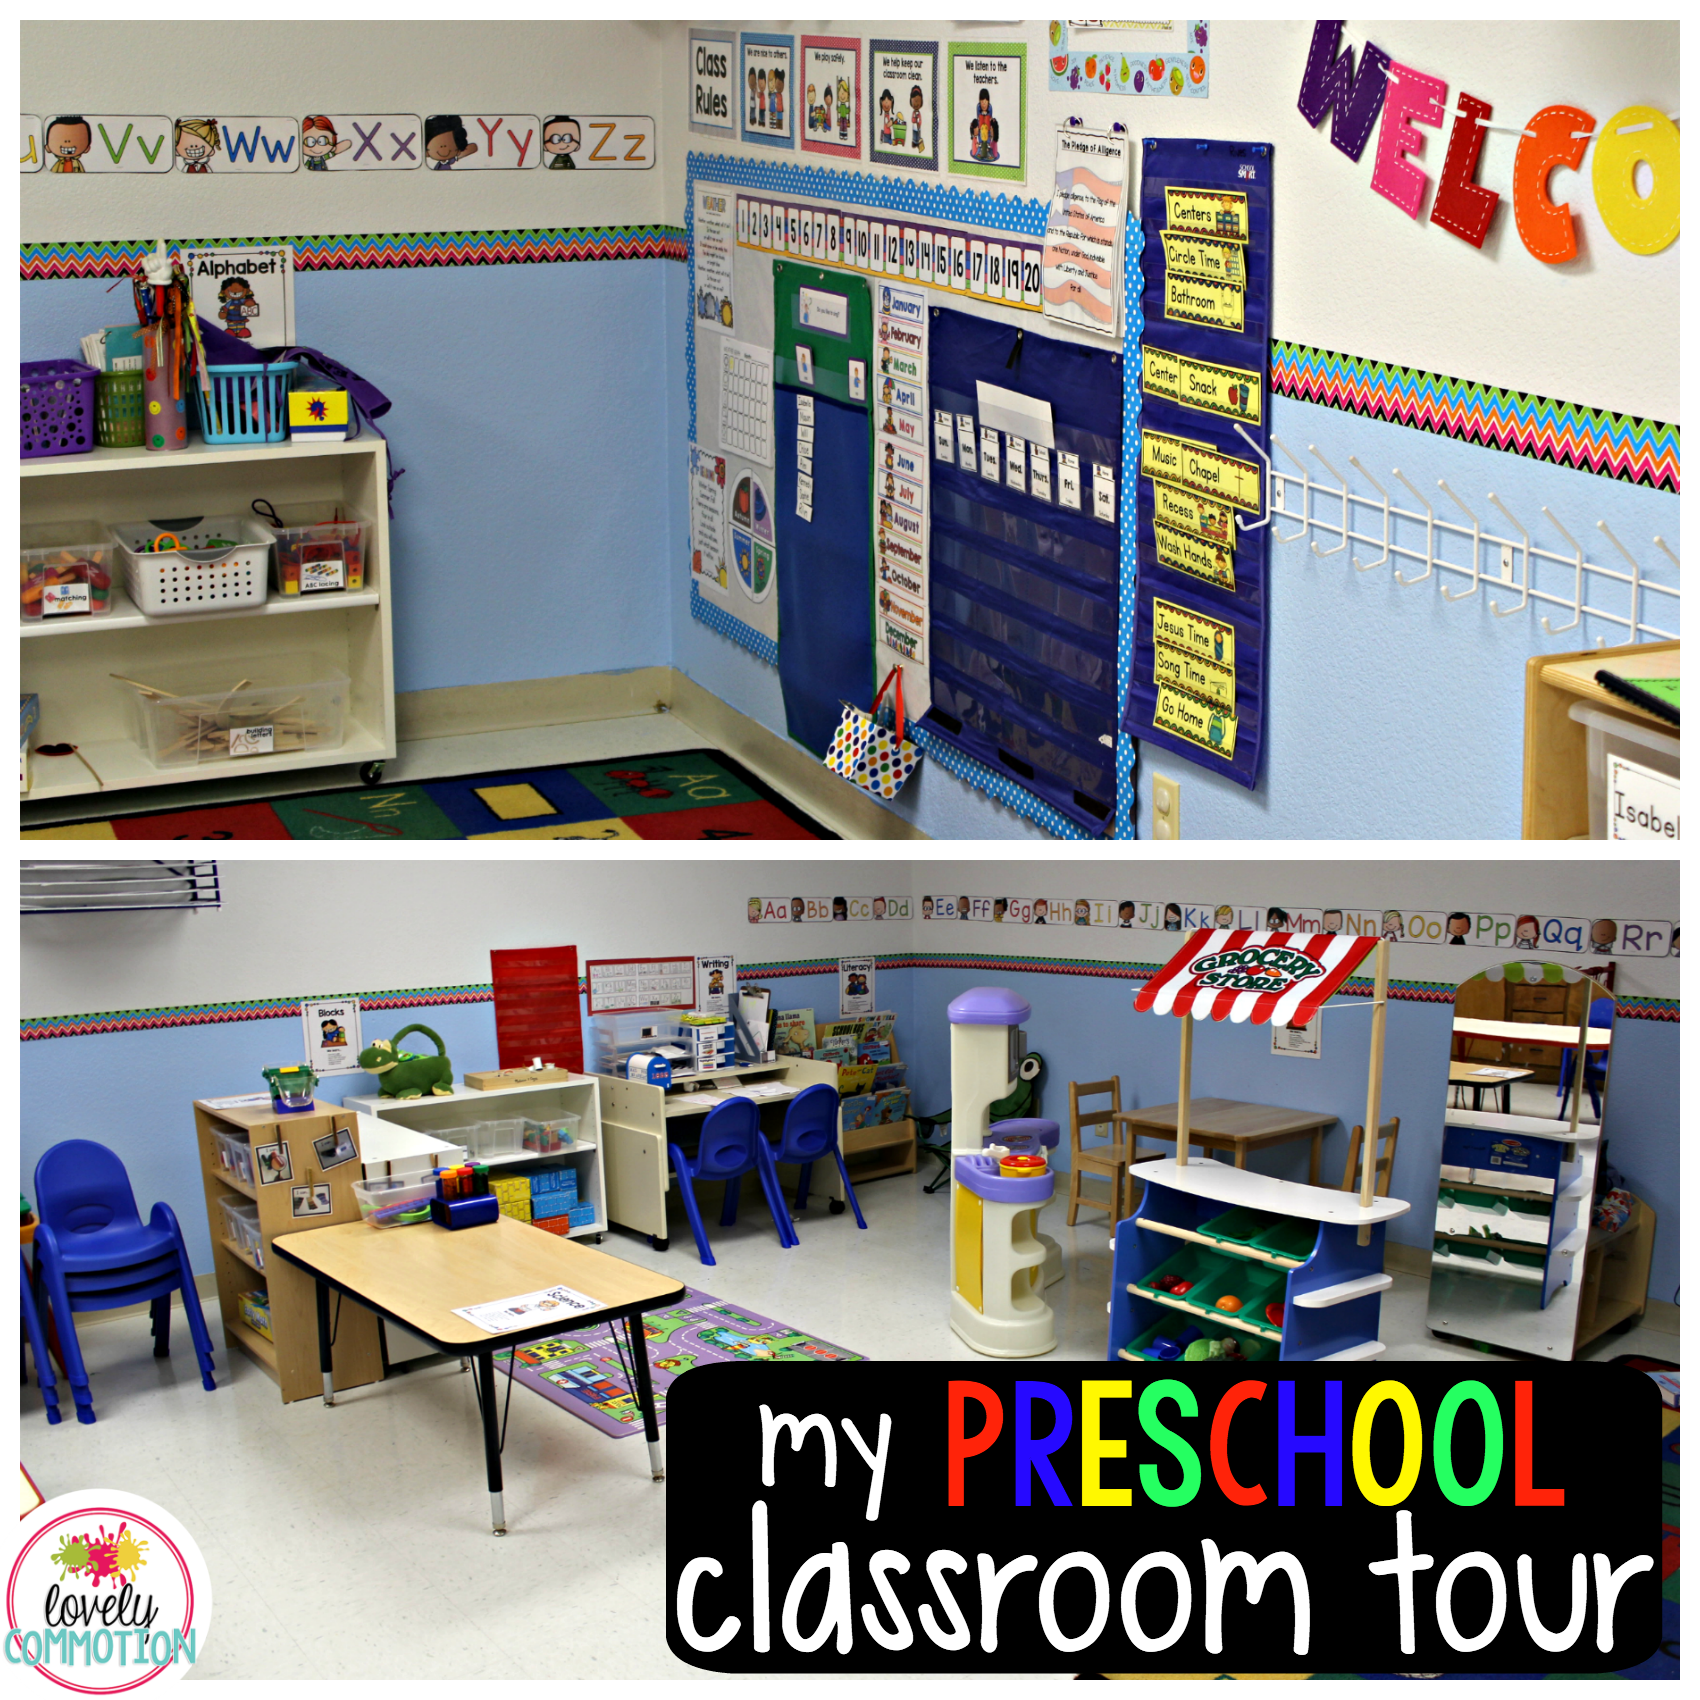 See the inside of my preschool classroom!